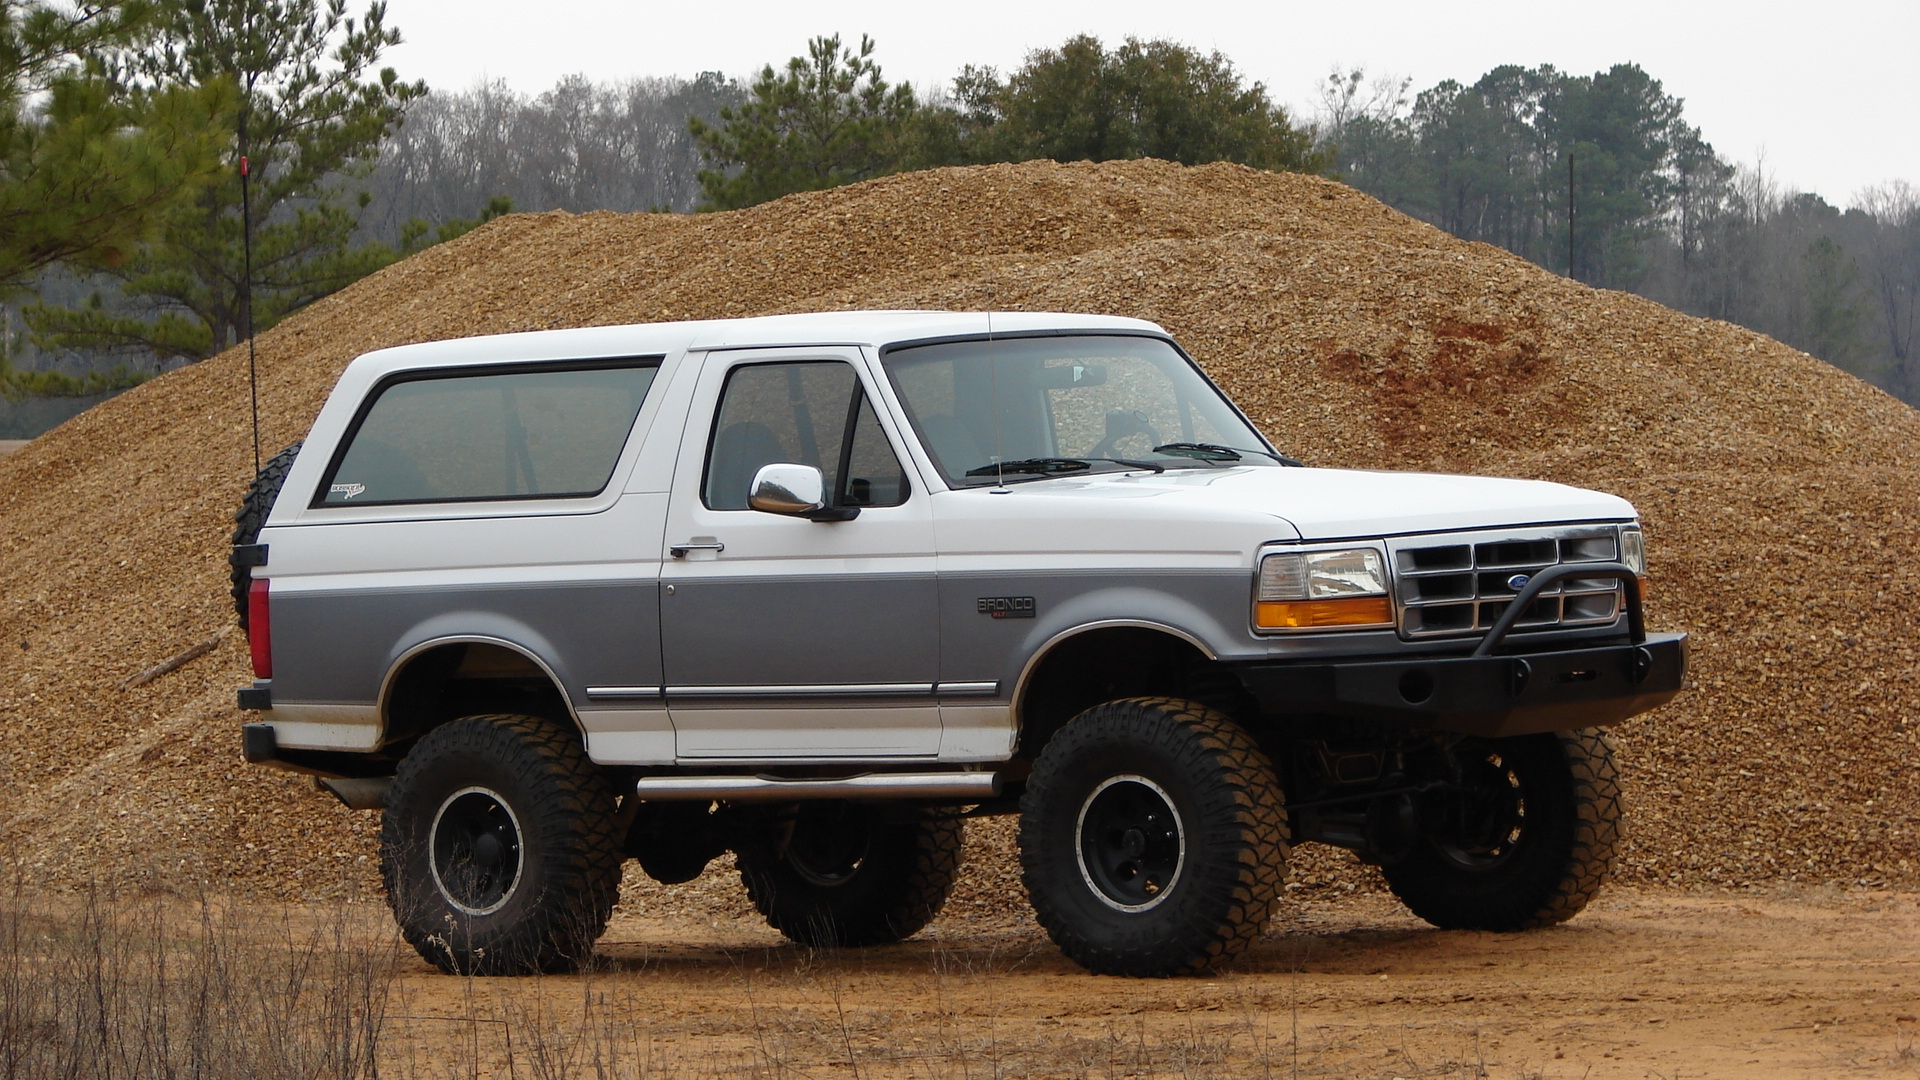 Original on 1995 Ford Bronco Prerunner